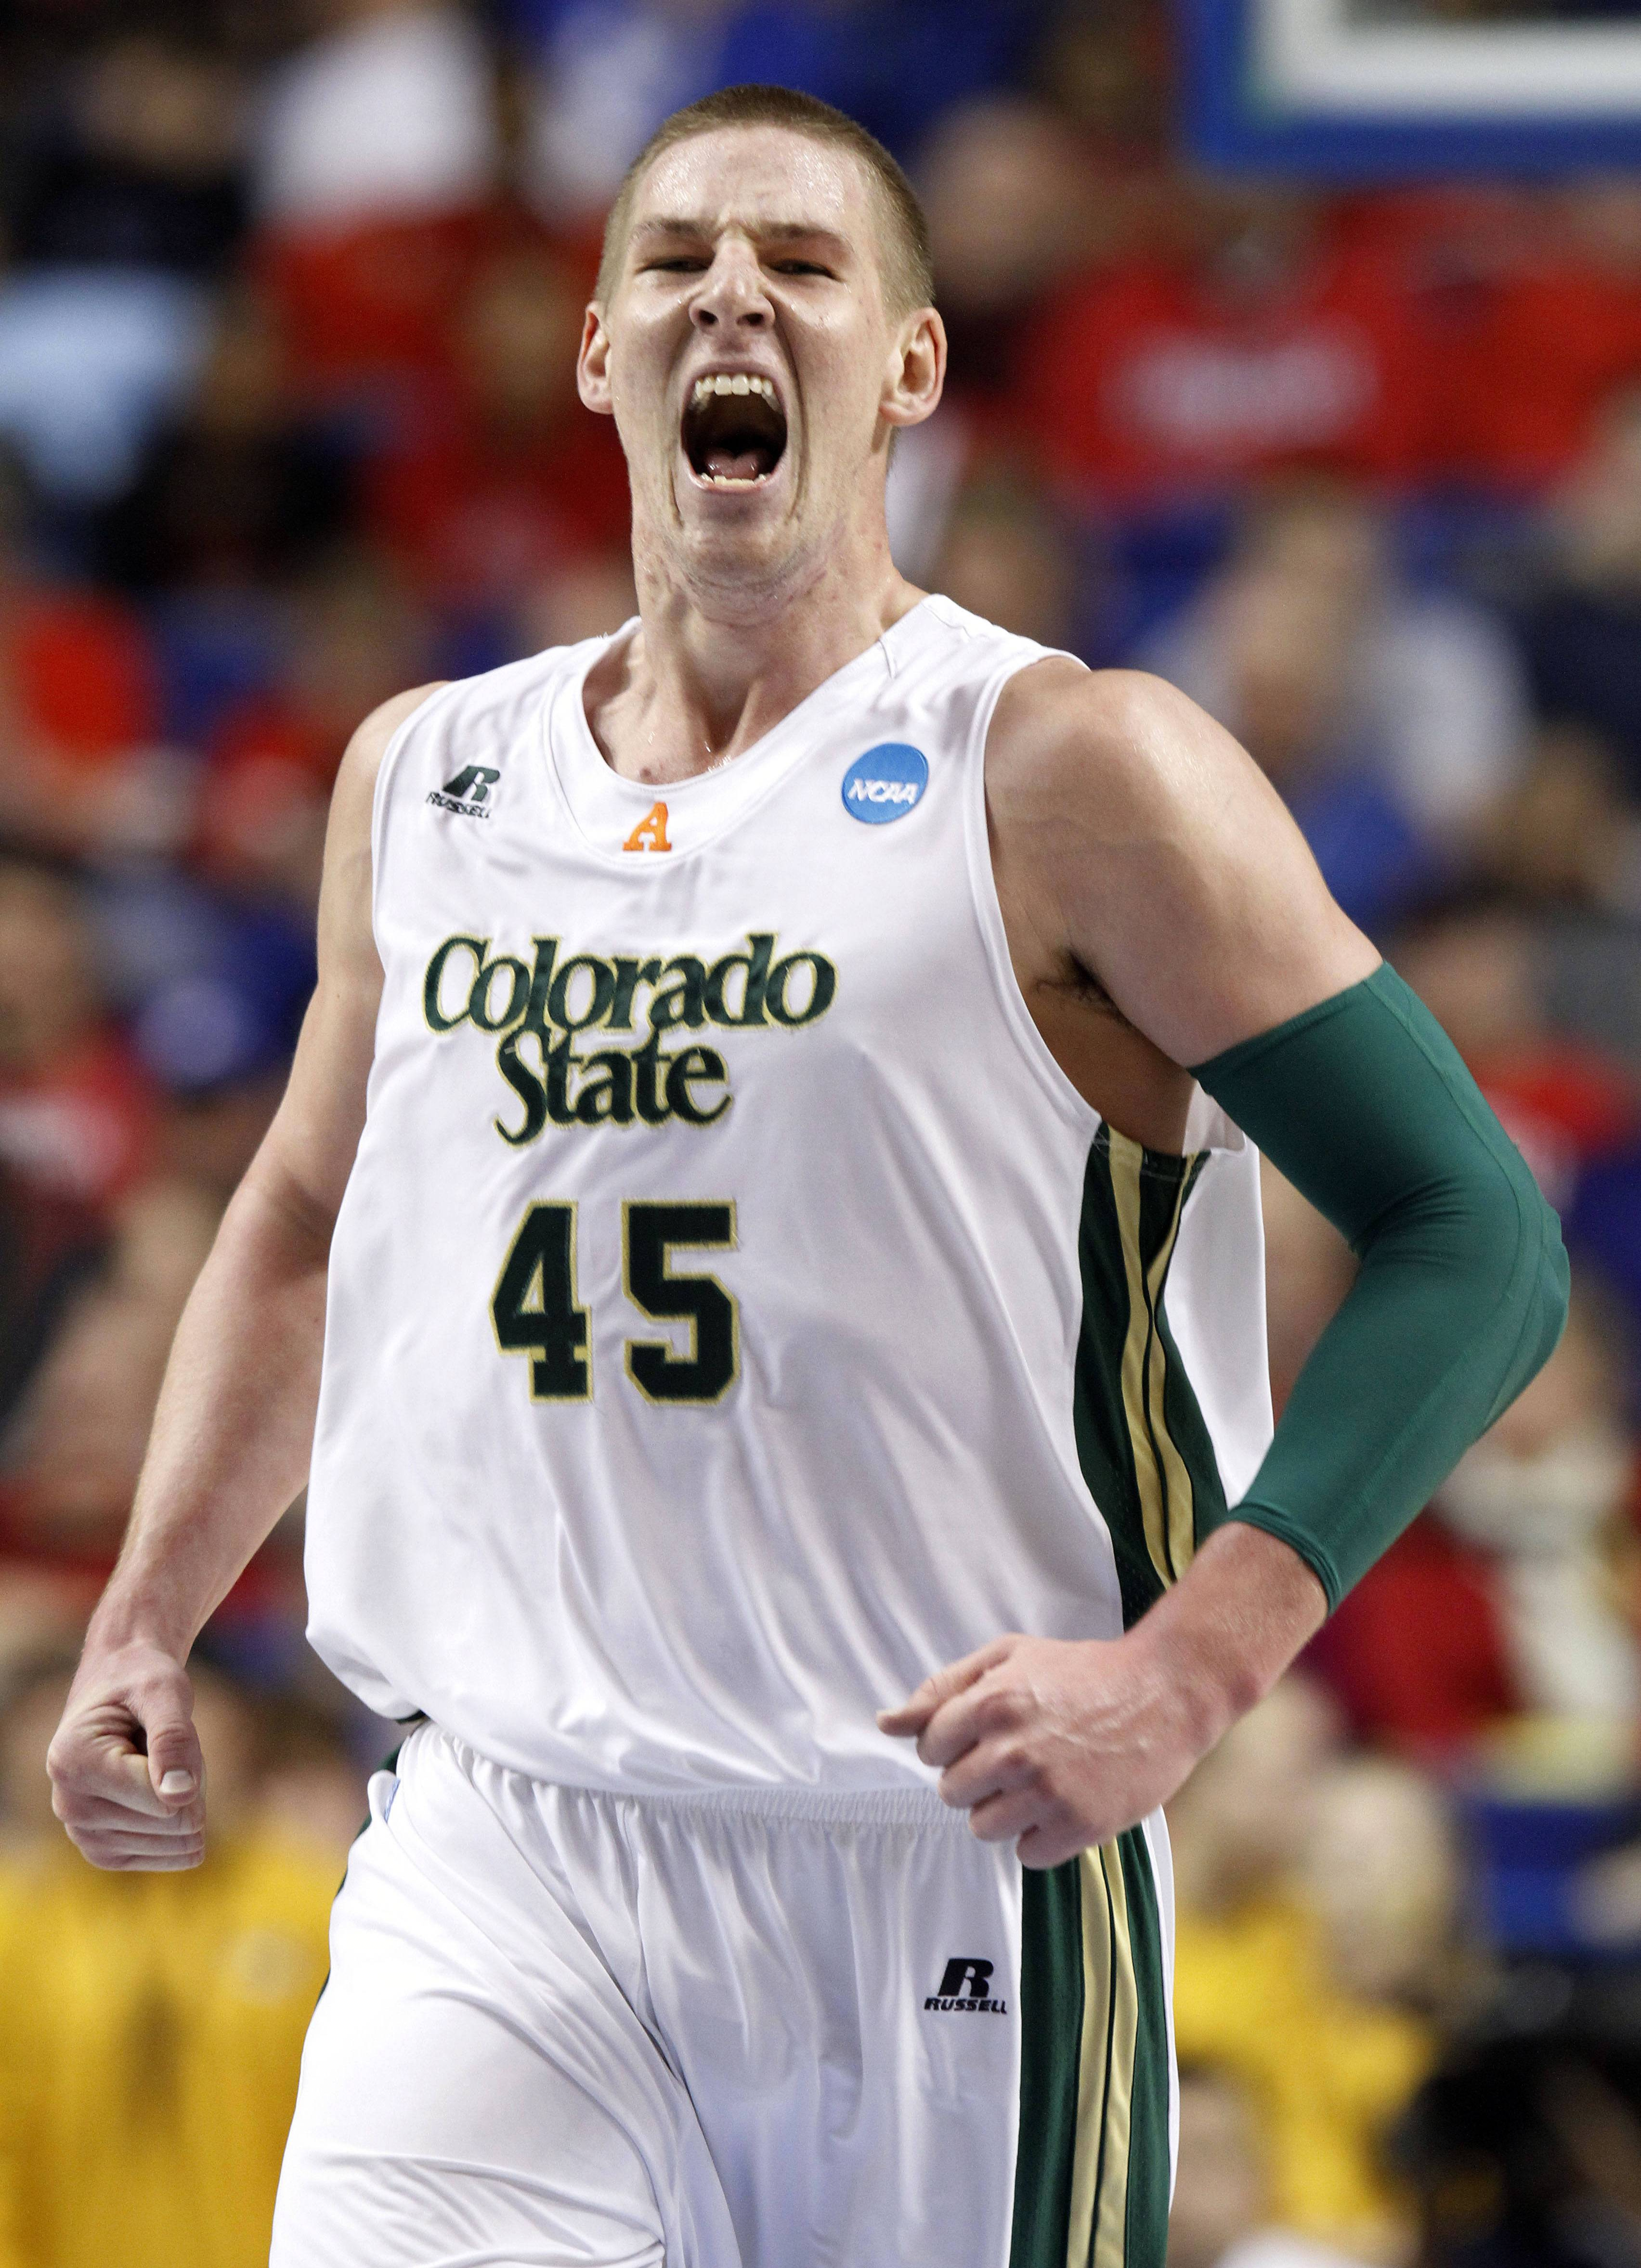 Colorado State's Colton Iverson (45) reacts after a basket during the first half of their second-round NCAA college basketball tournament game against Missouri, Thursday, March 21, 2013, in Lexington, Ky.